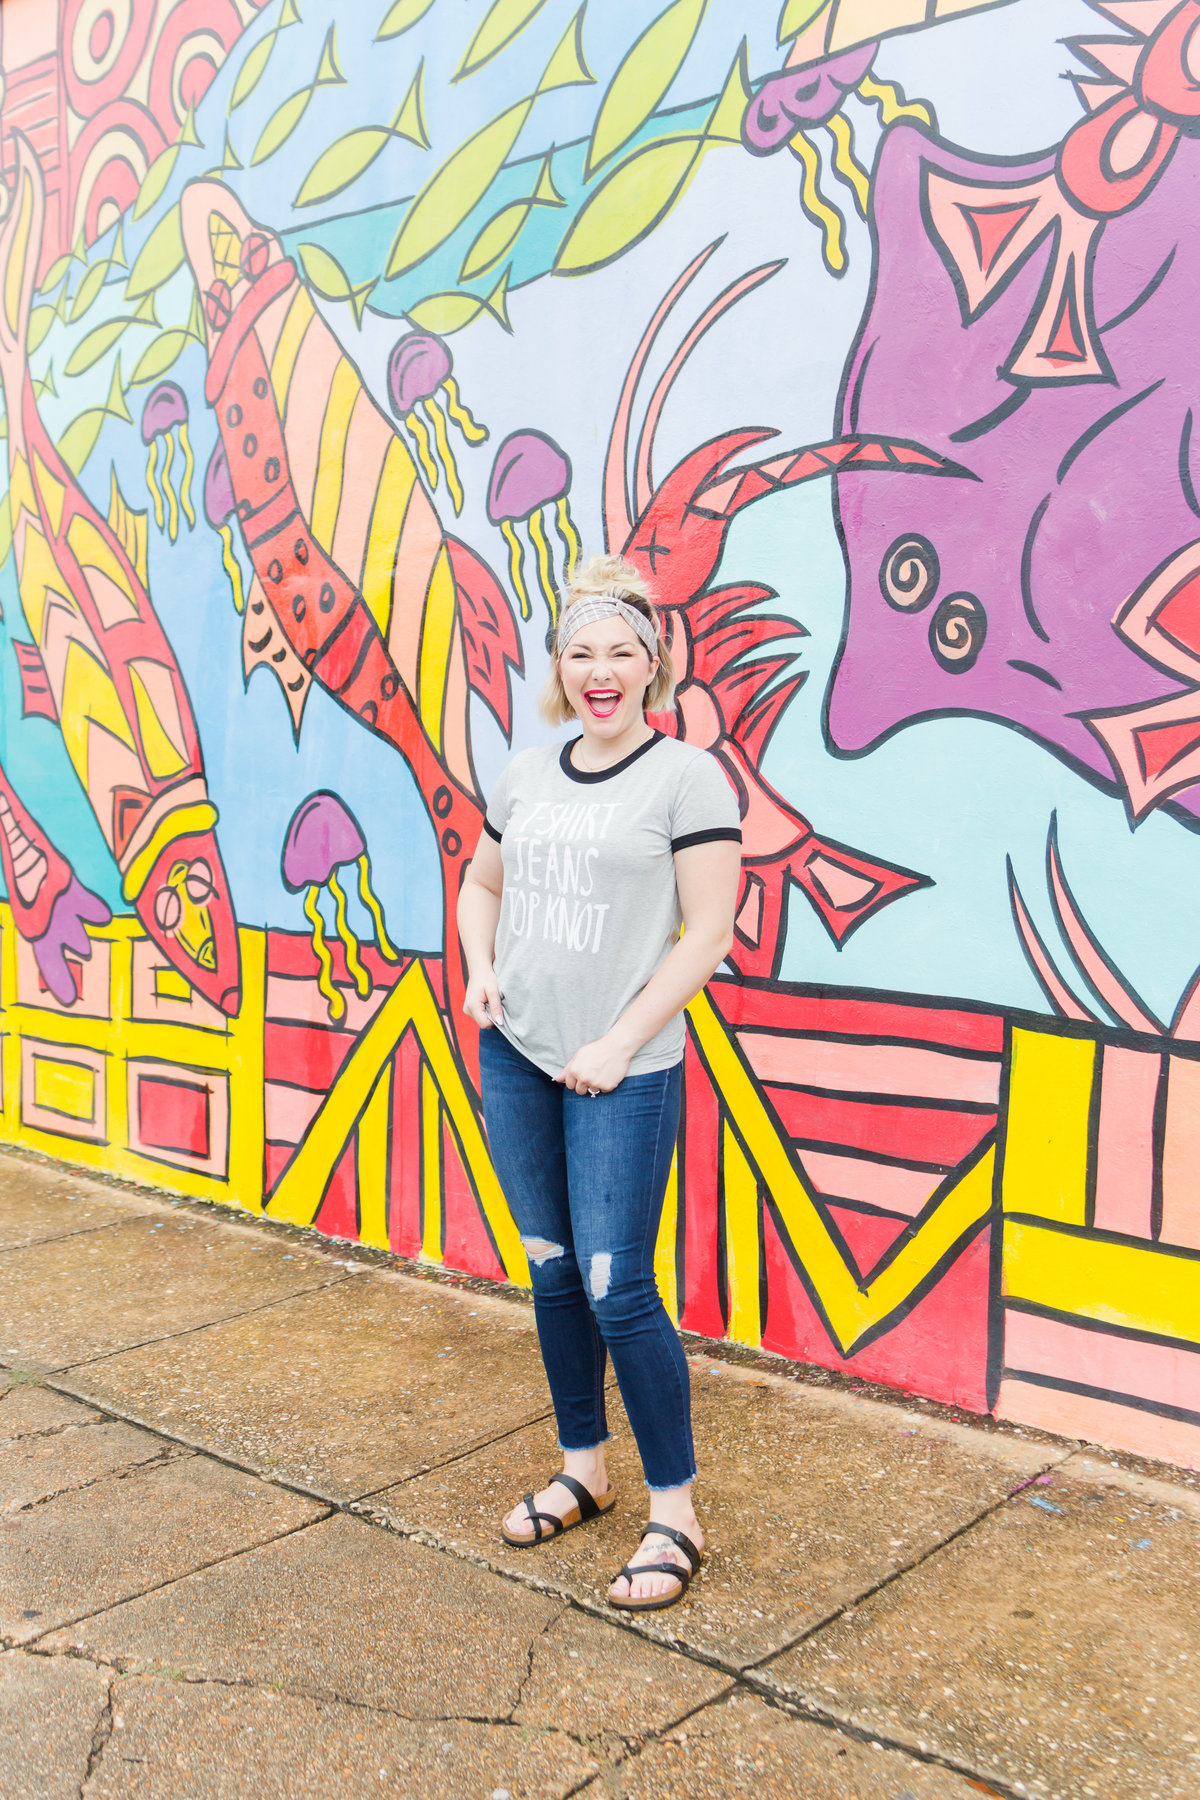 Fairhope Mural Wall Portraits by Toni Goodie Photography